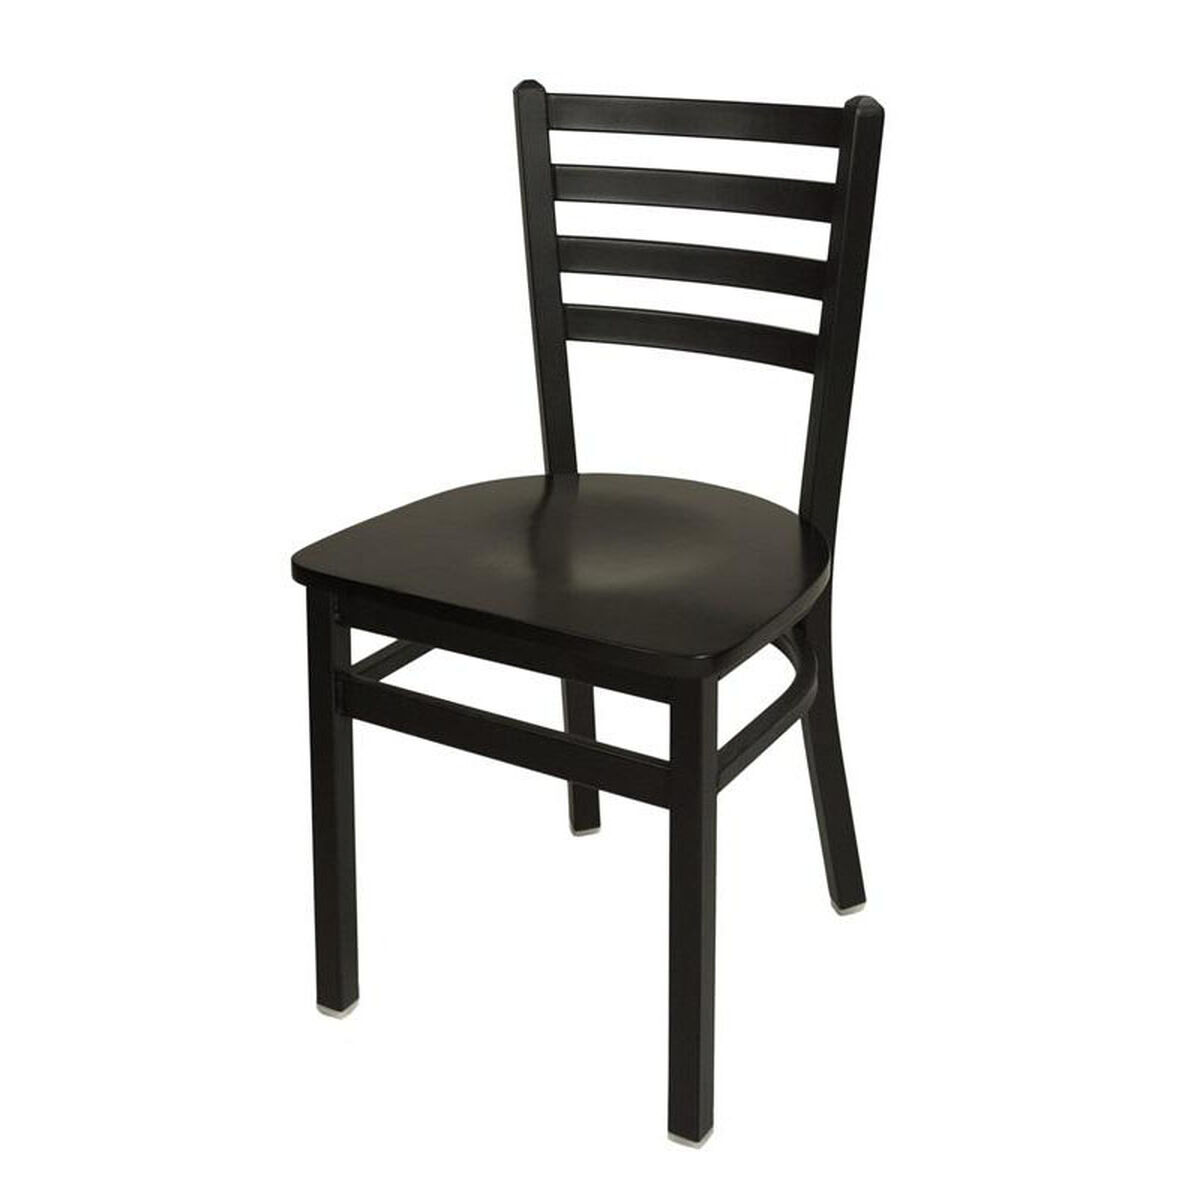 Our Lima Metal Ladder Back Chair Black Wood Seat Is On Now